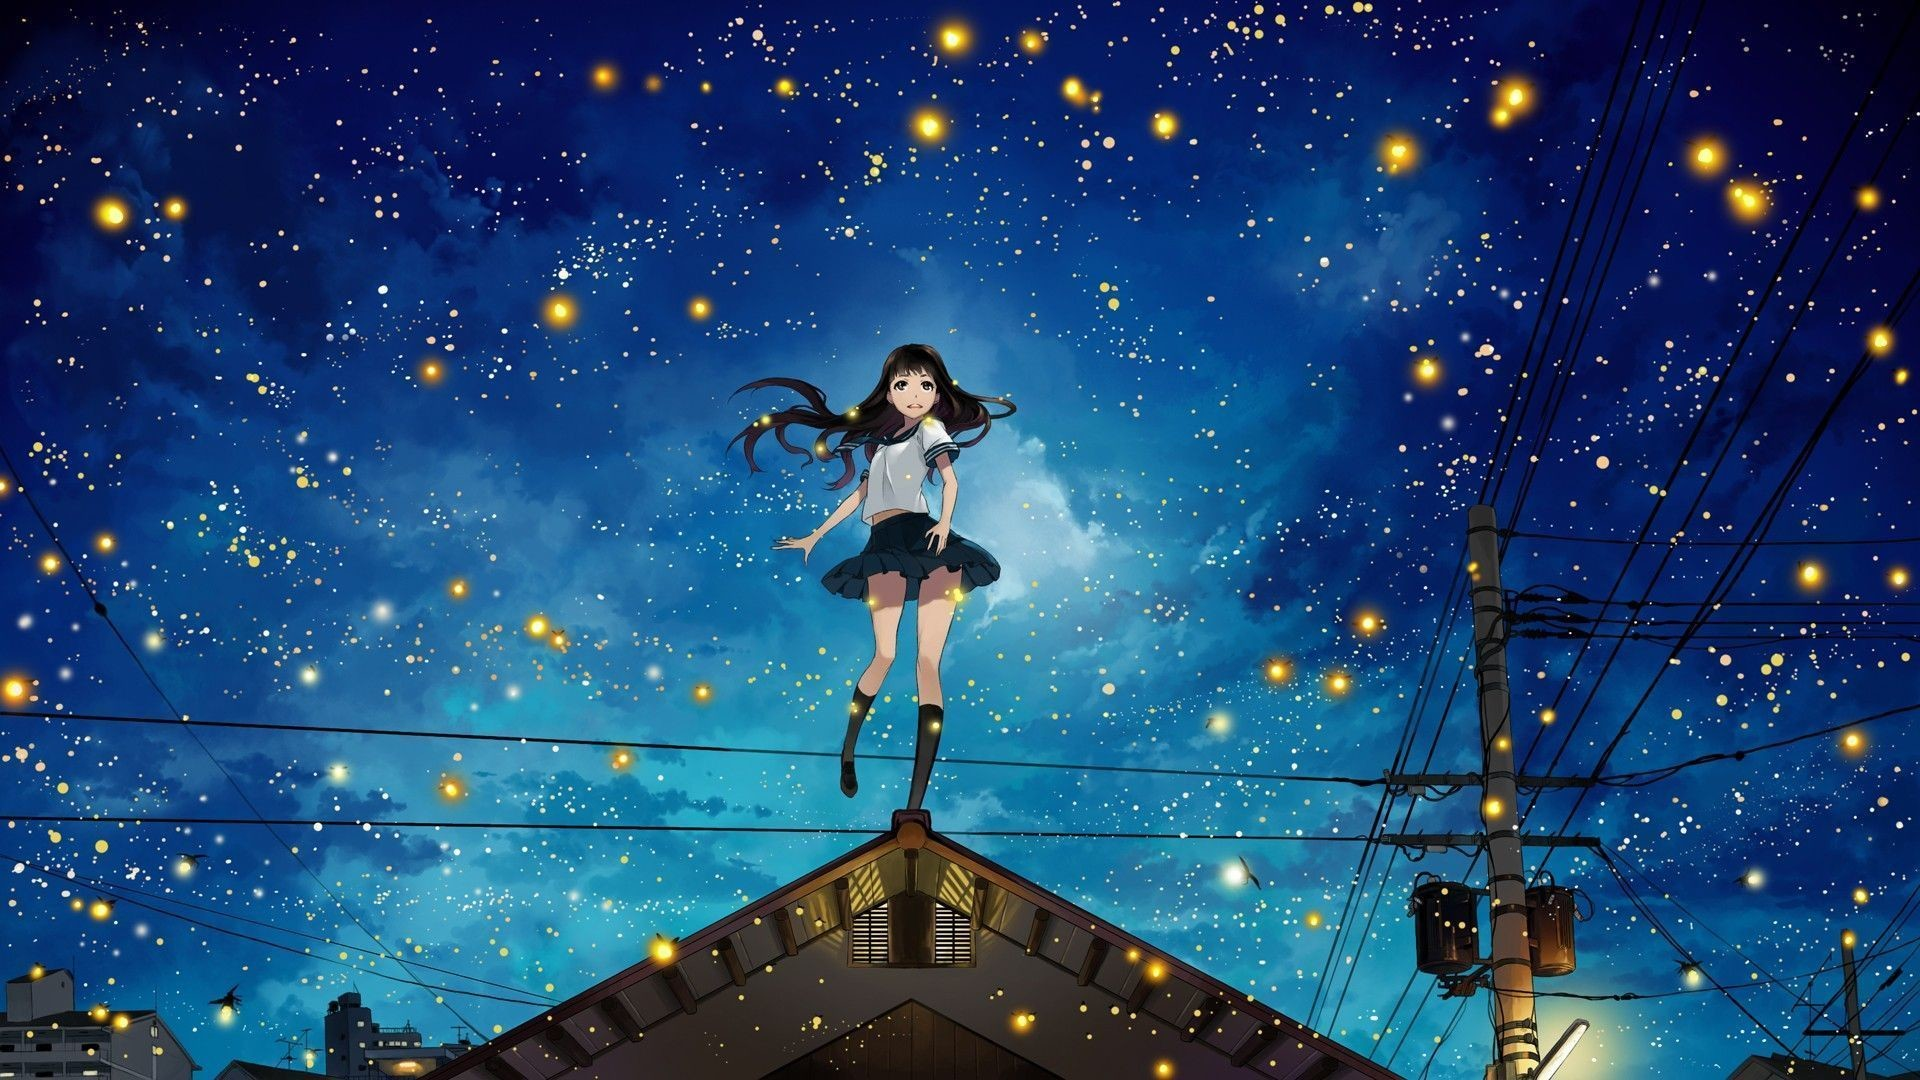 Res: 1920x1080, Anime Girls at Night Sky HD Wallpaper » FullHDWpp - Full HD .